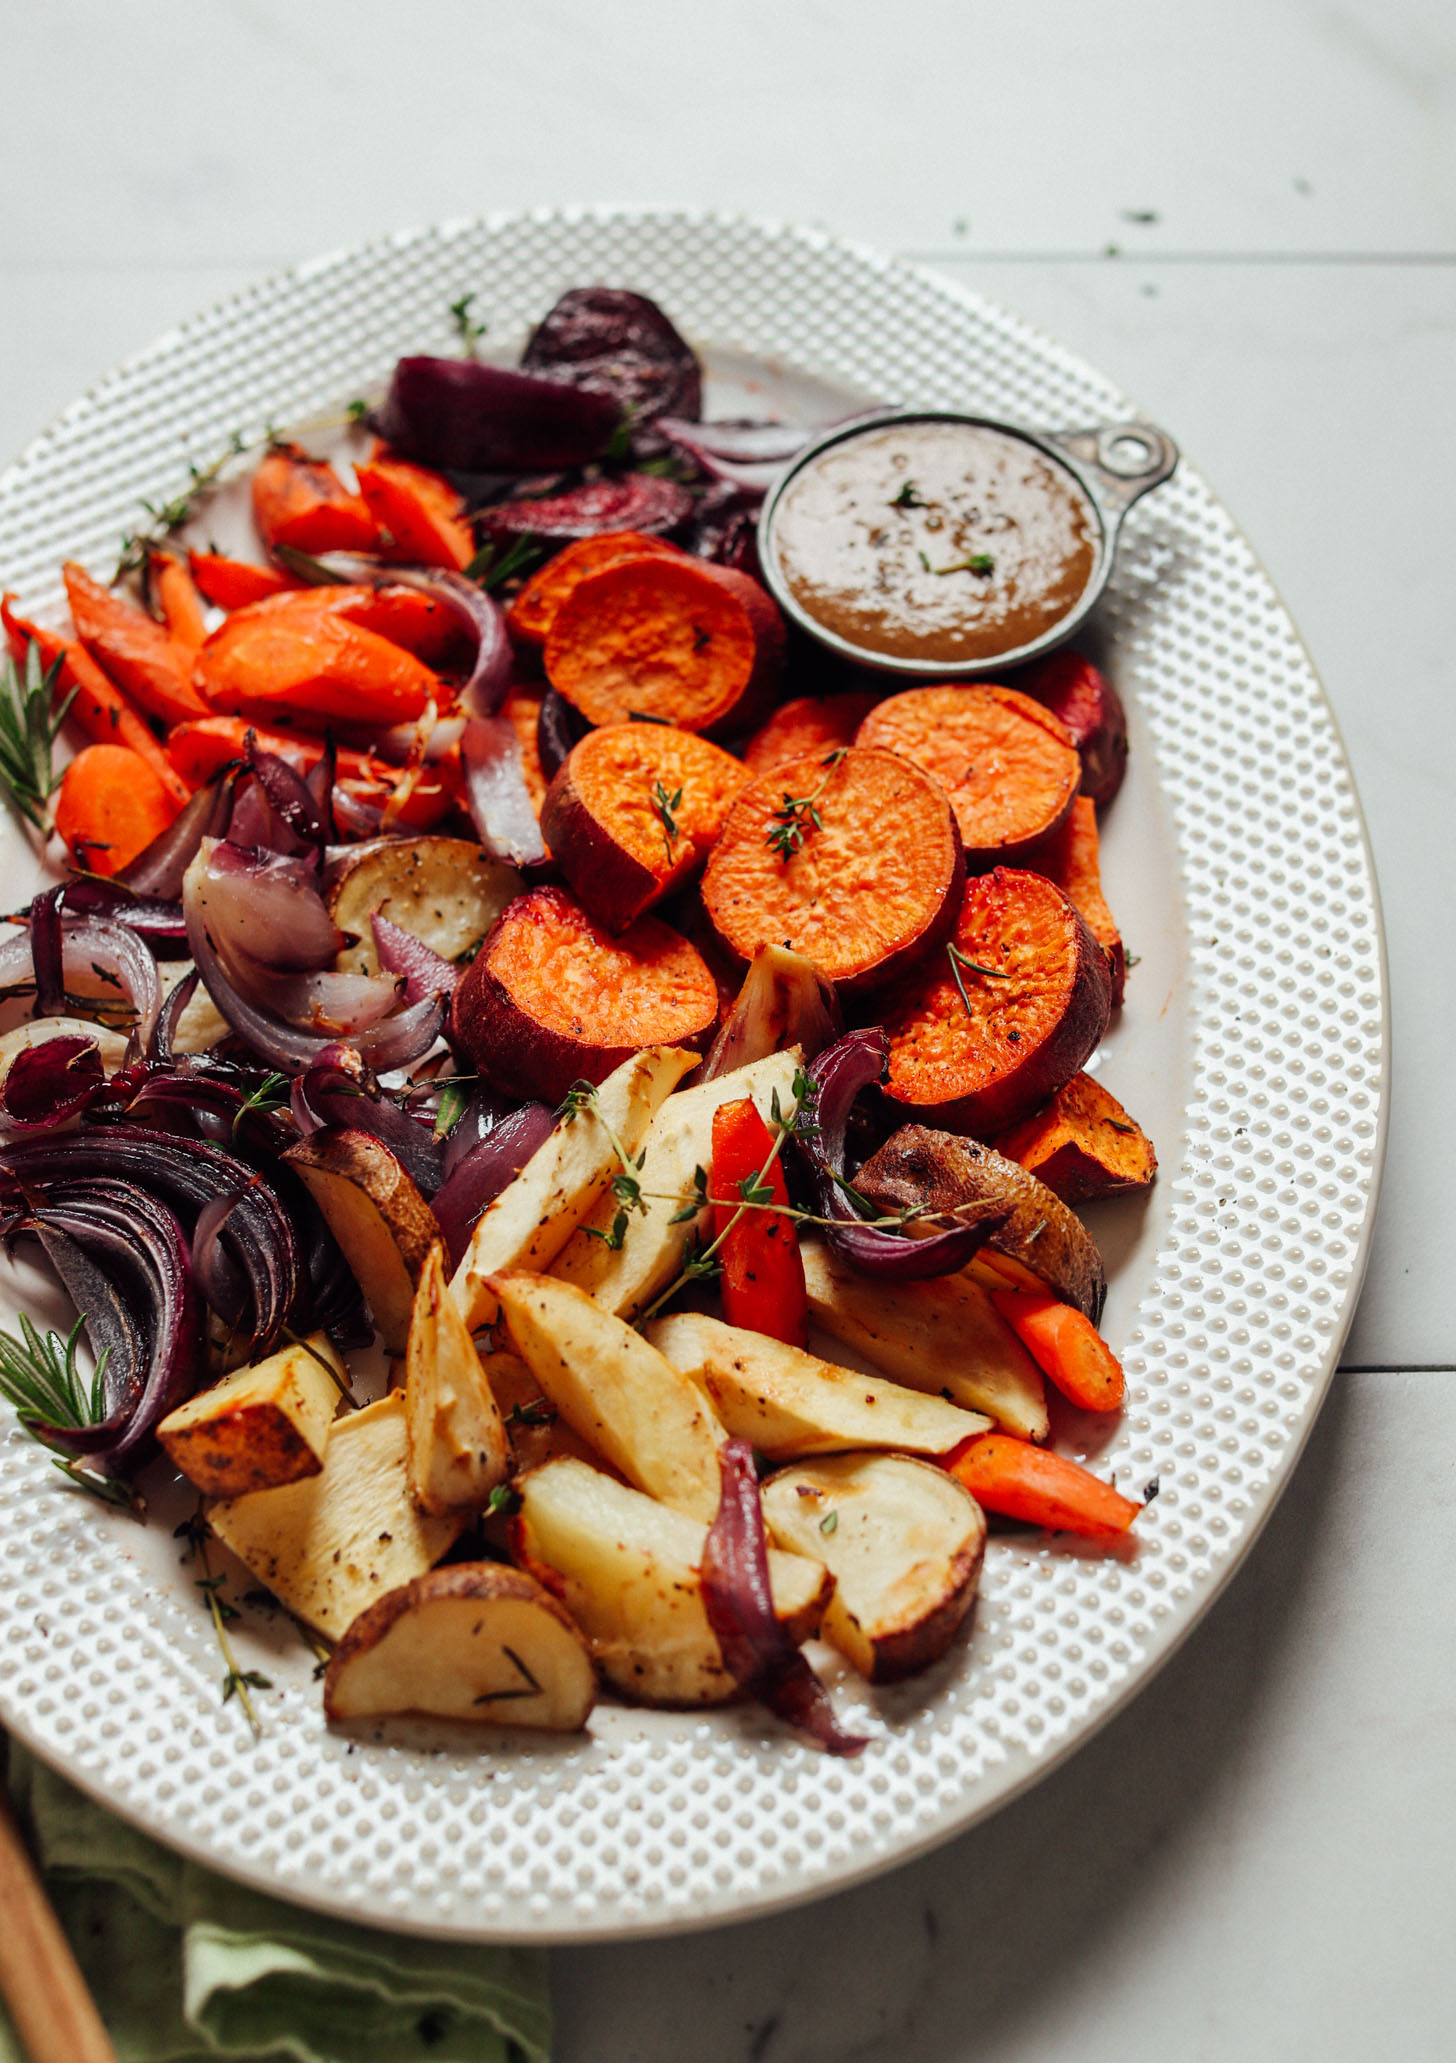 A backlit view of a platter of pan roasted vegetables with vegan gravy